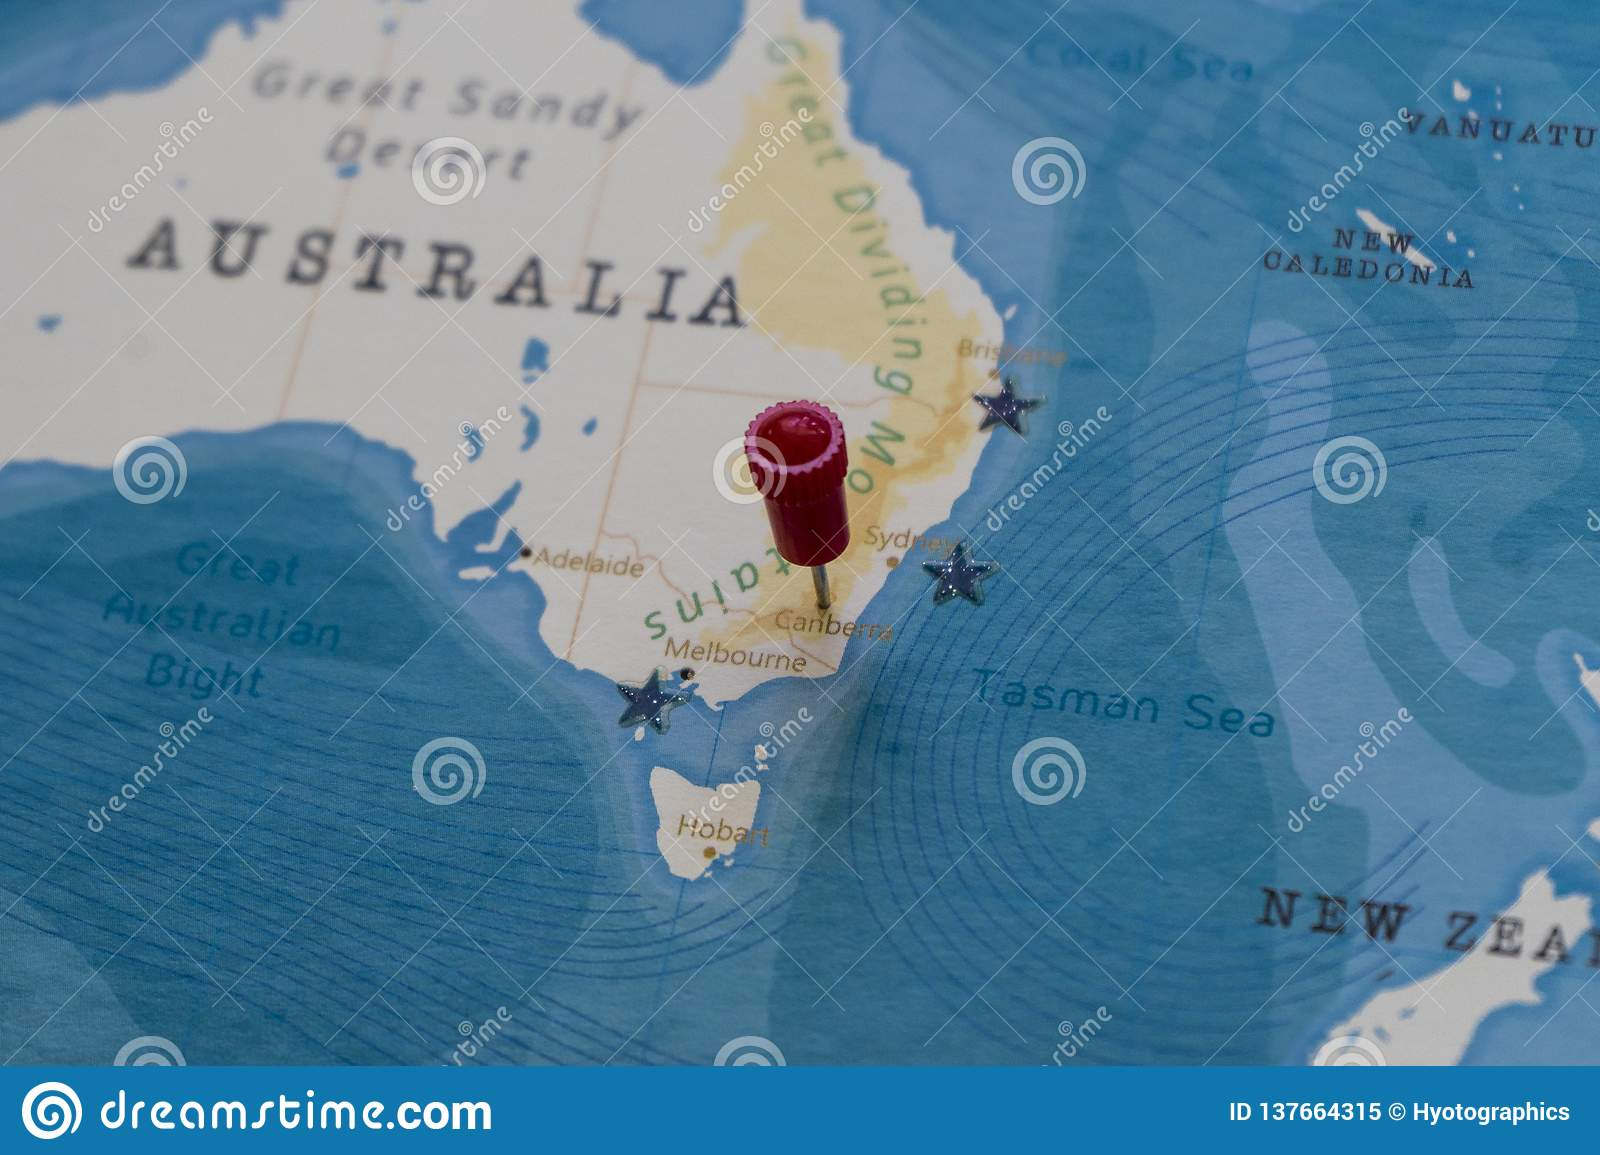 A Pin On Canberra Australia In The World Map Stock Image Image Of